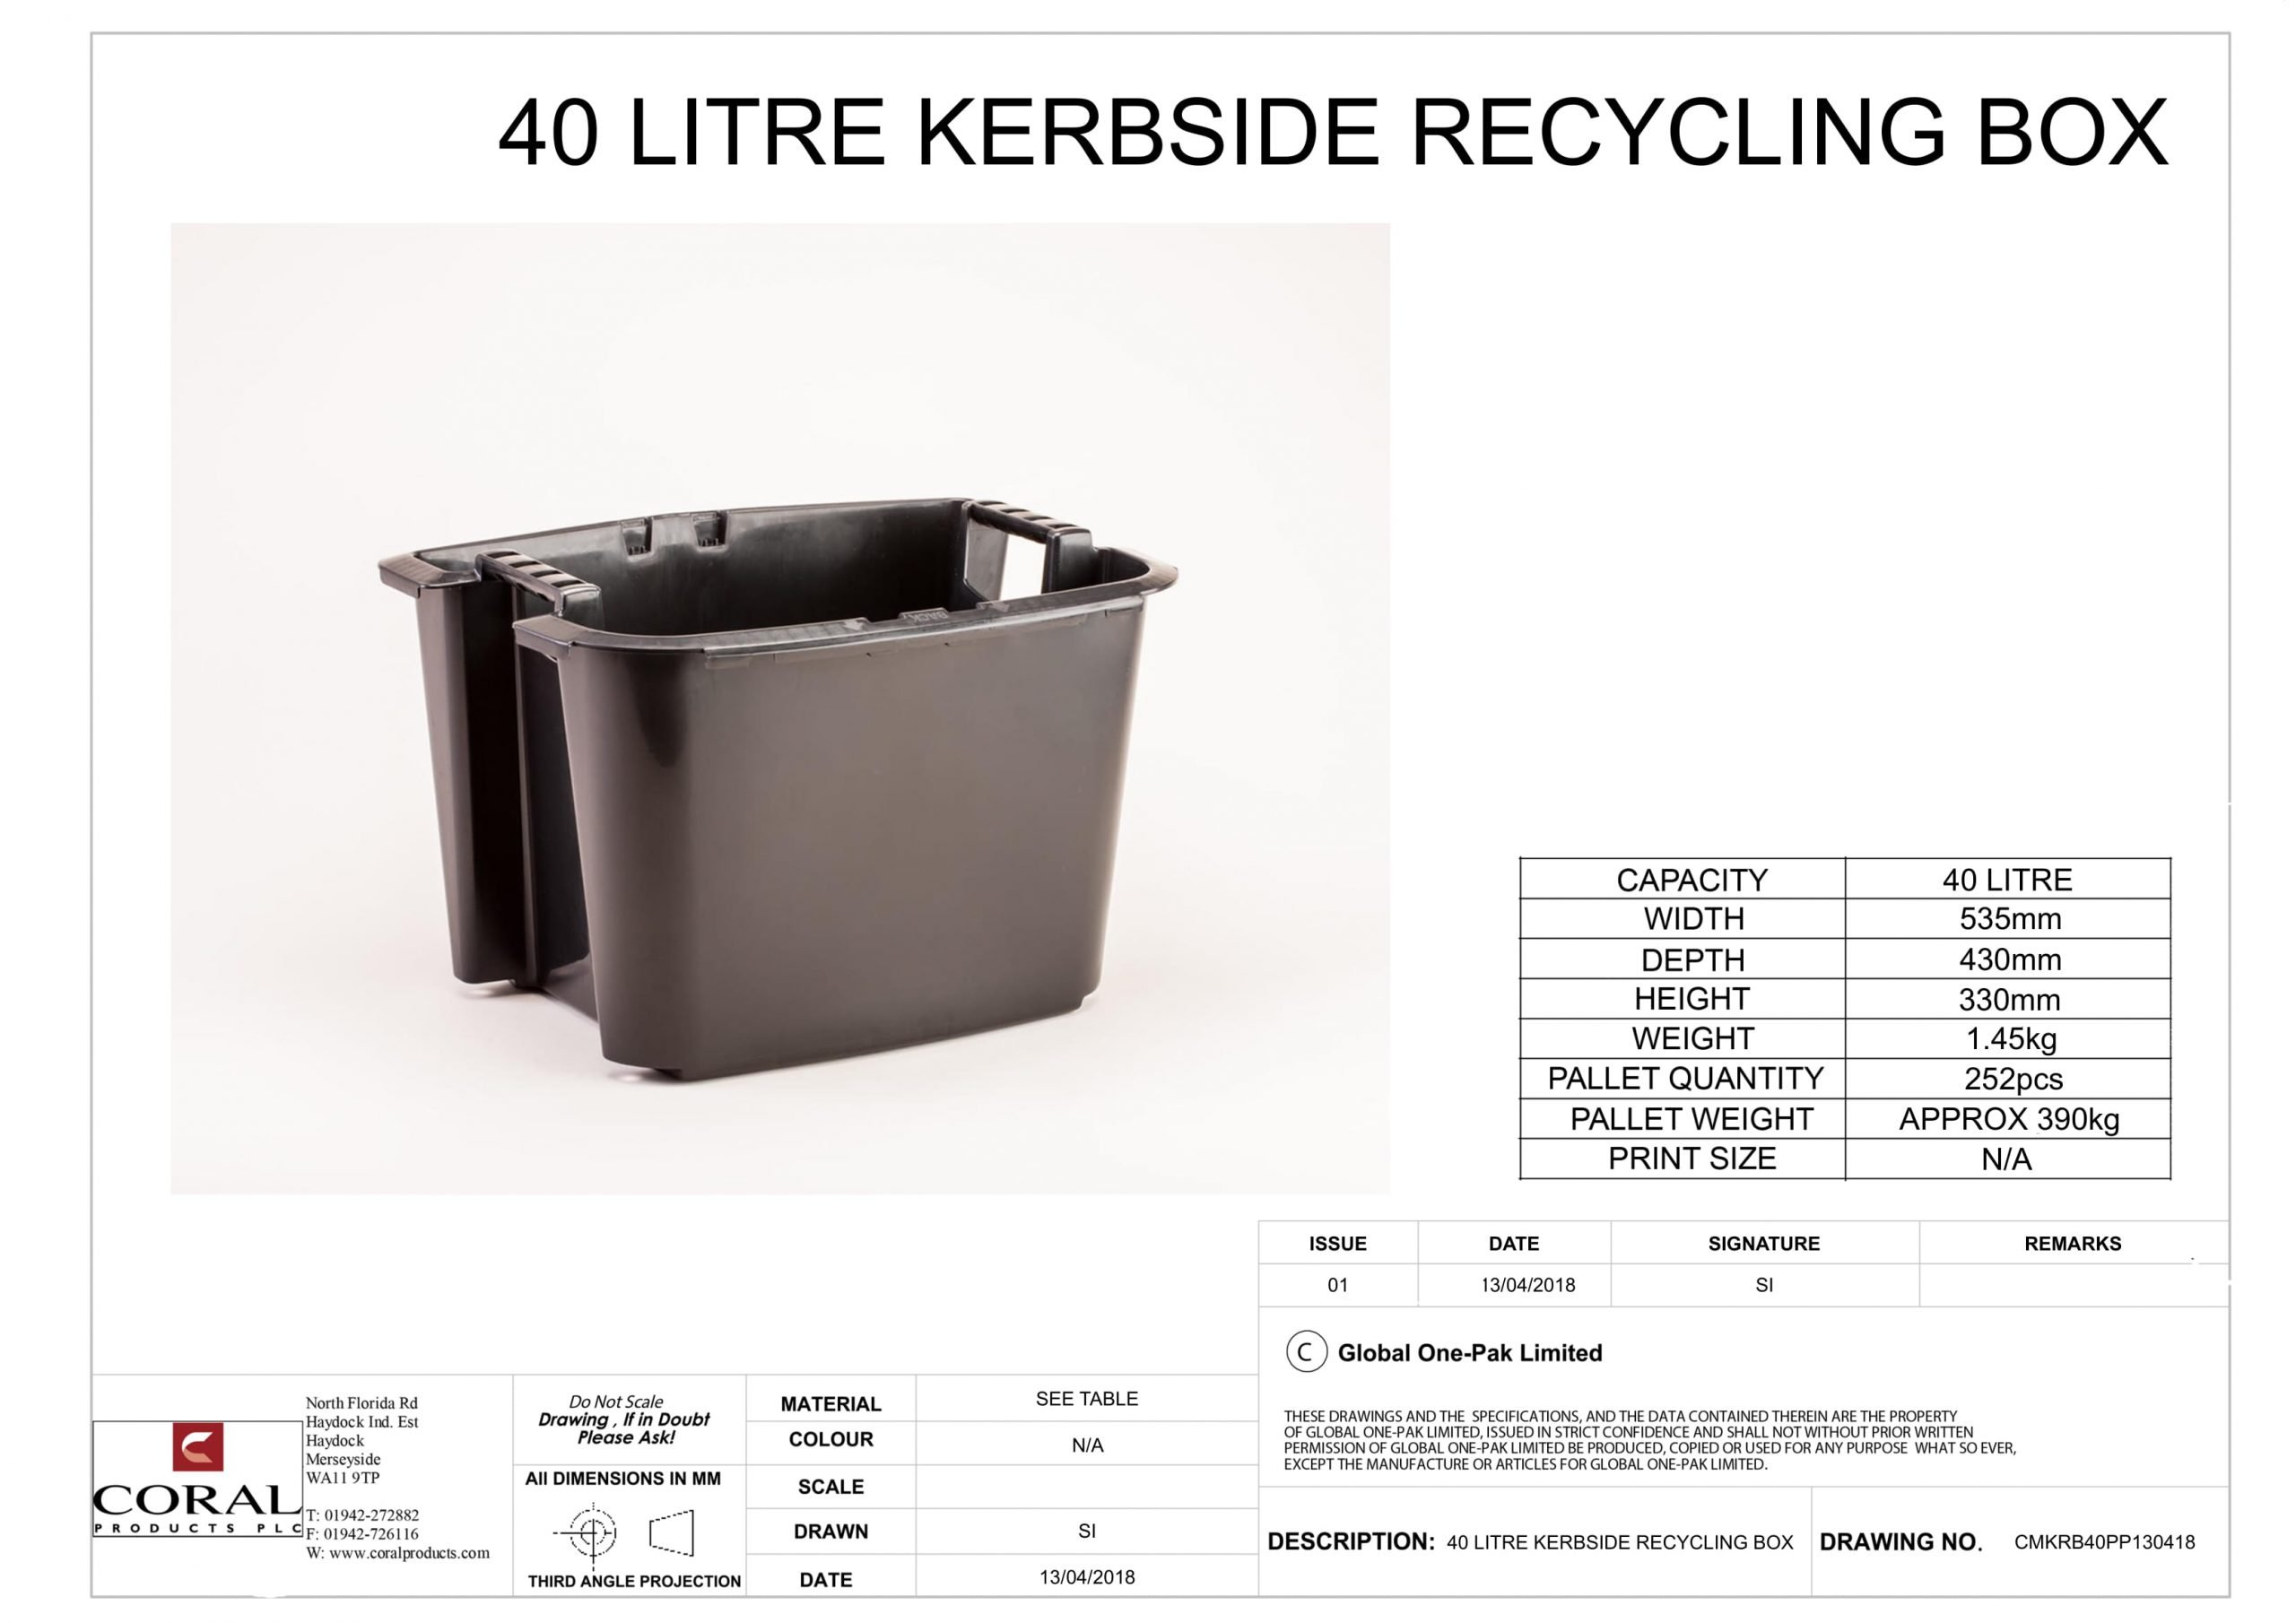 40 Litre Kerbside Recycling Box Data Sheet 1 scaled